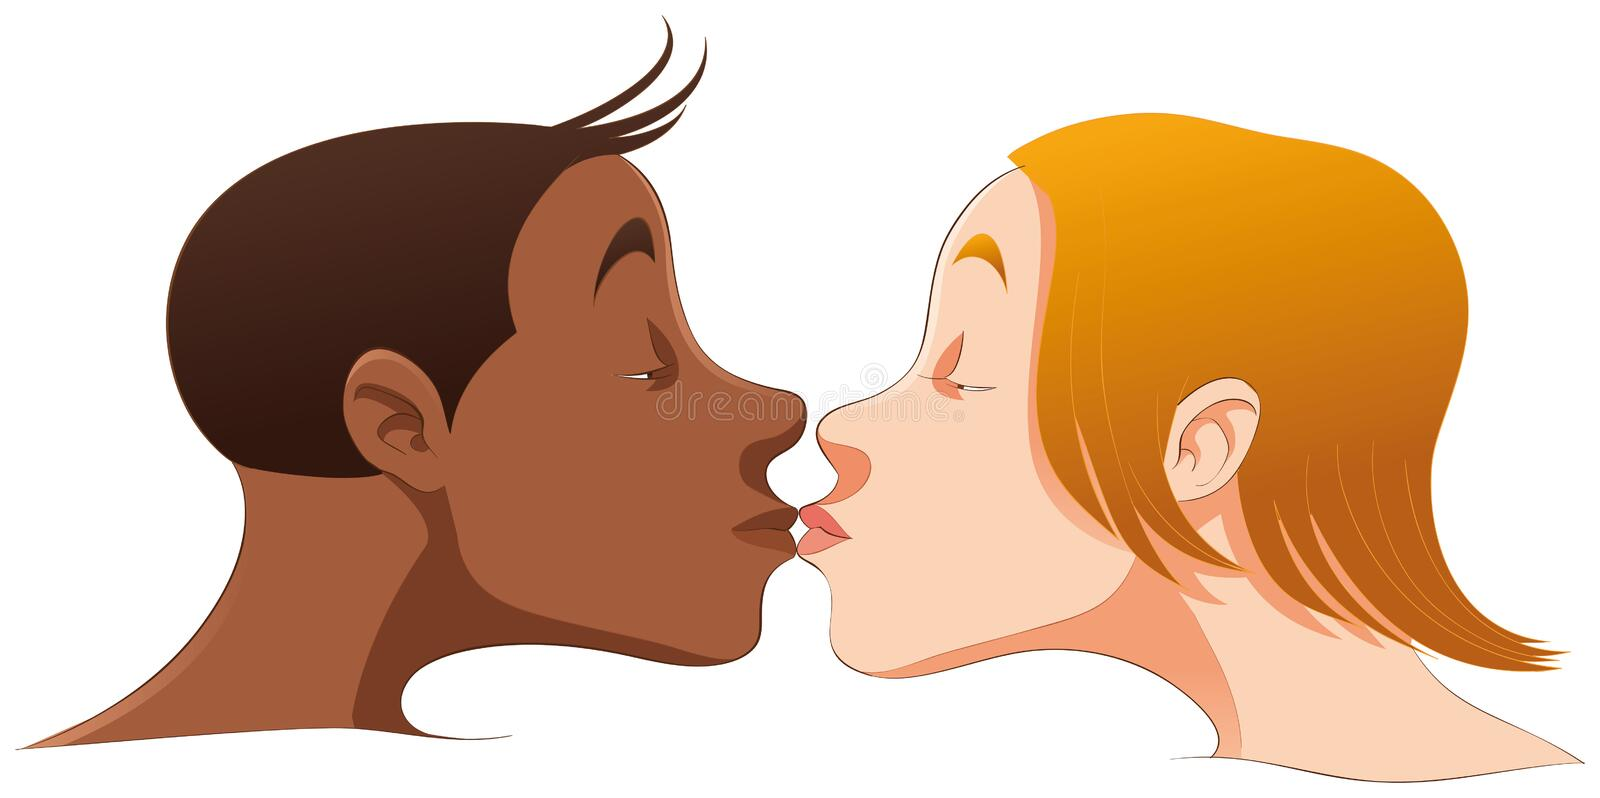 Download The kiss stock illustration. Illustration of black, cute - 8300726